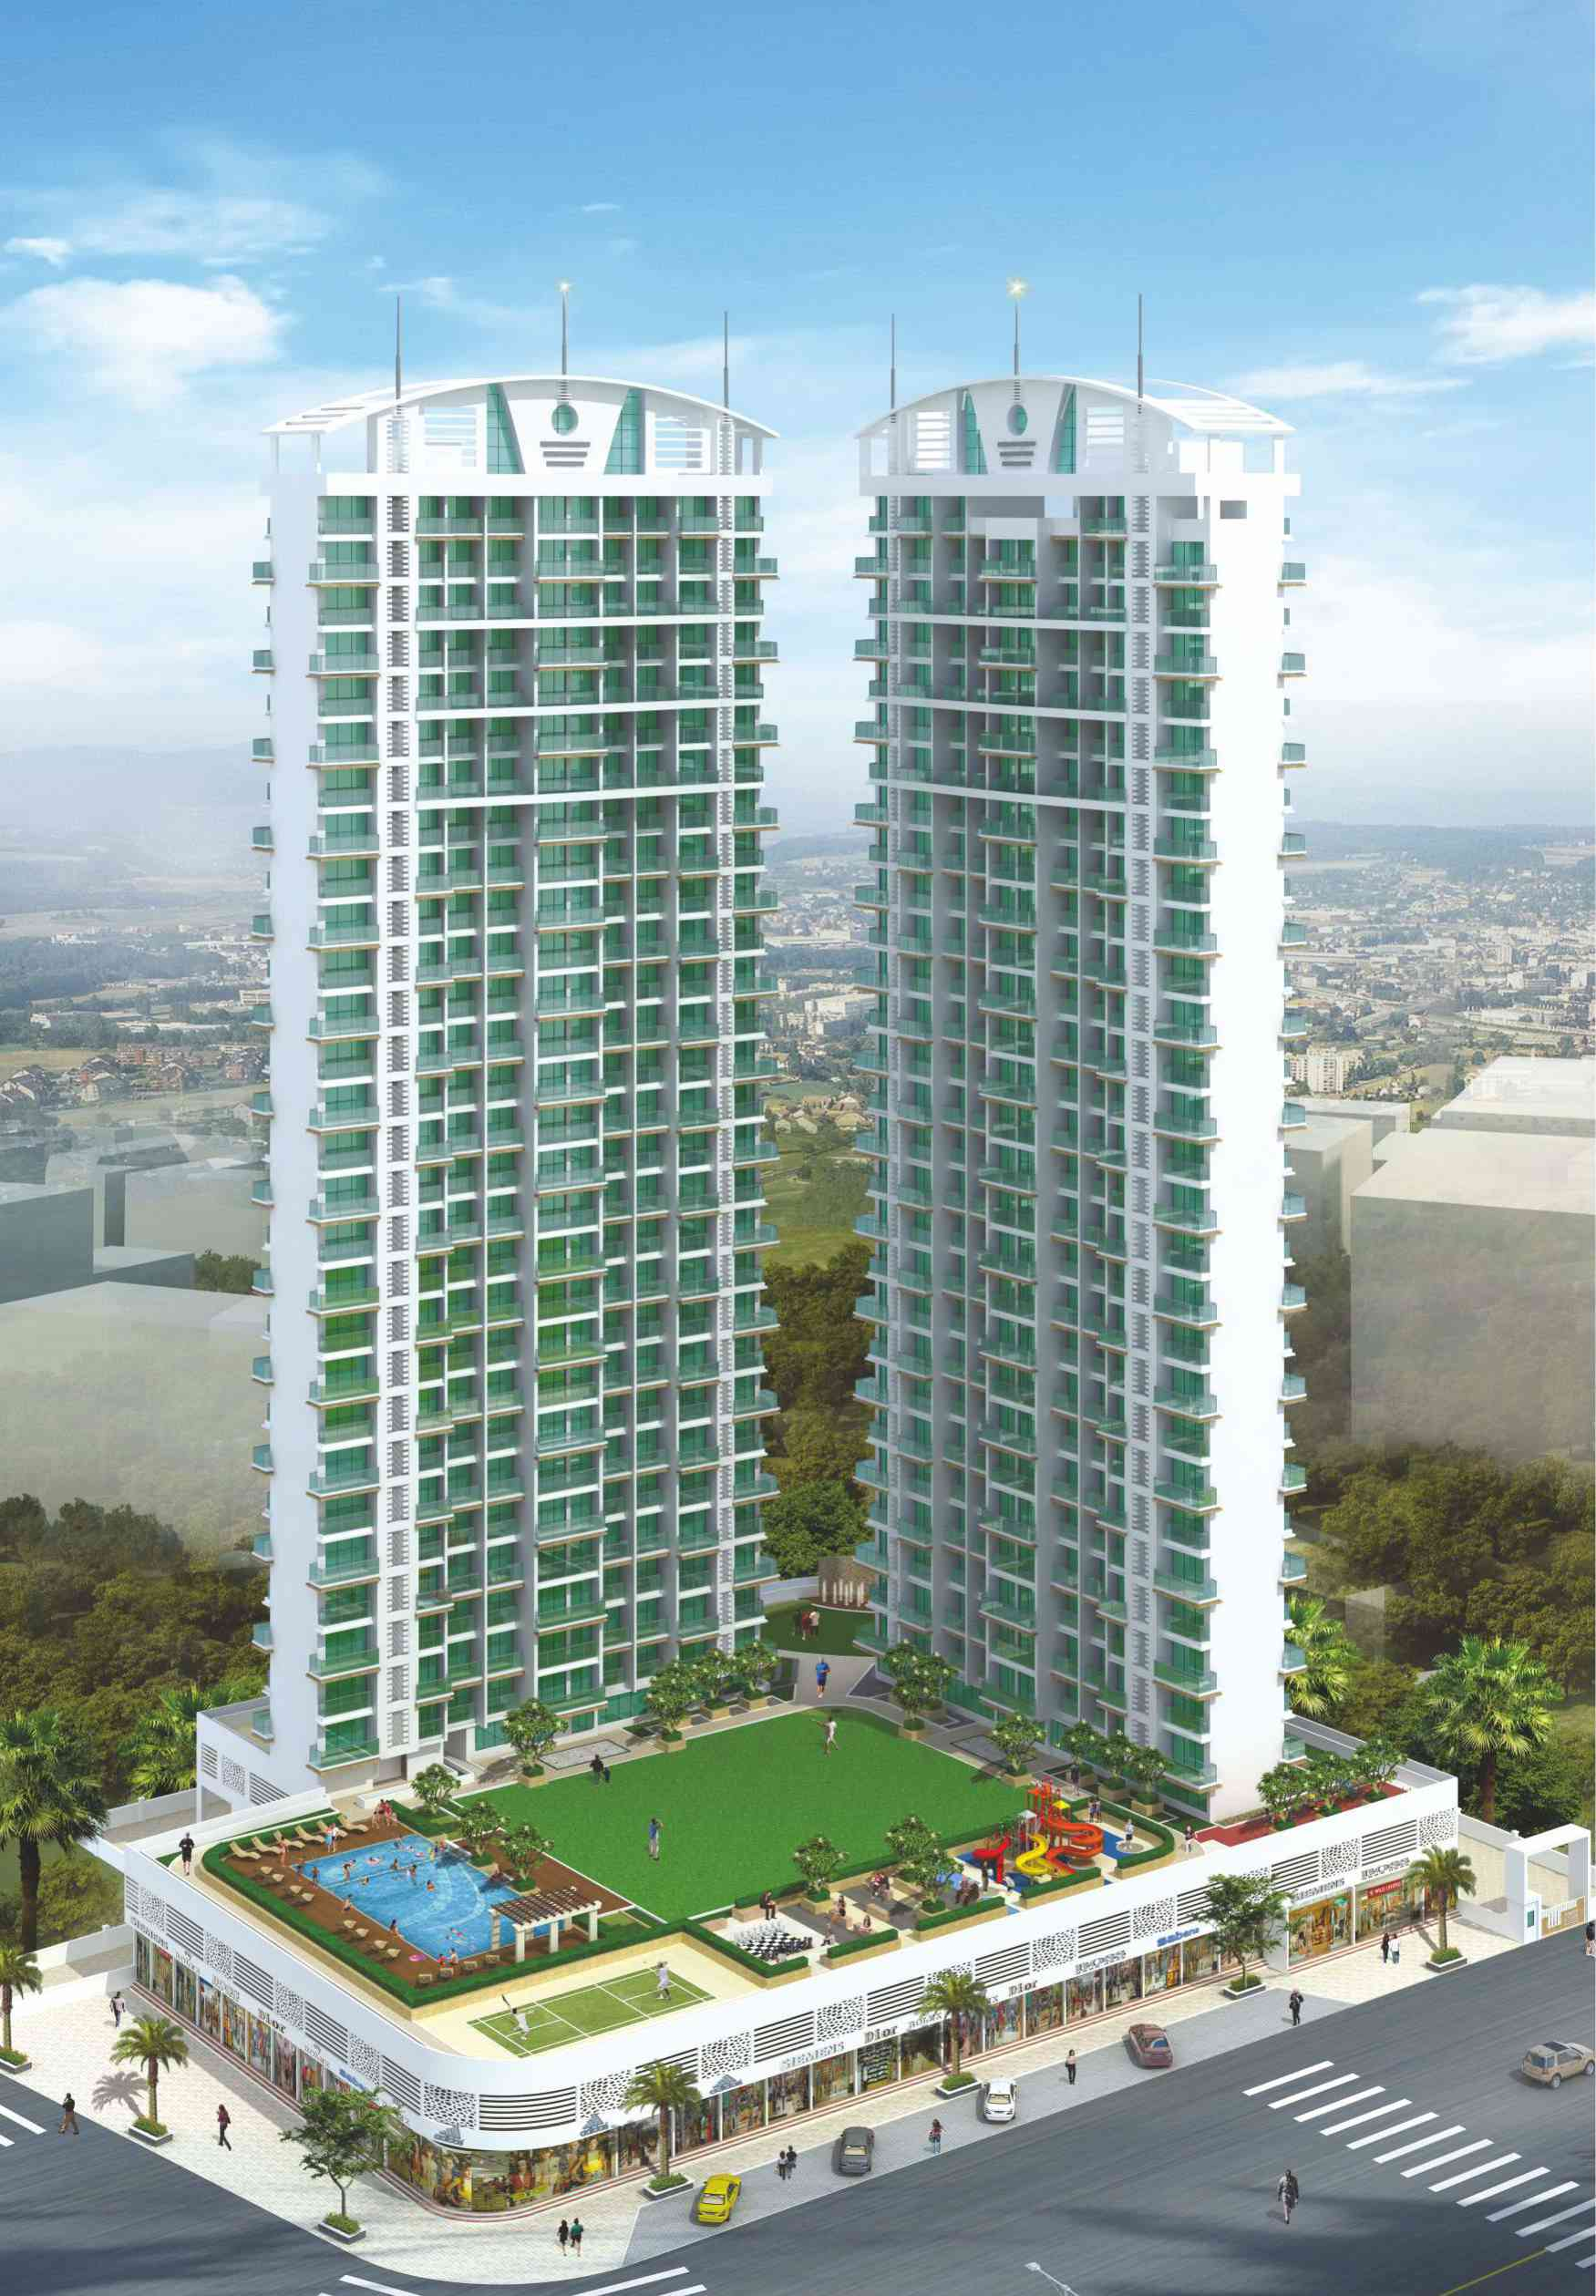 2 & 3 BHK Flats in kharghar Navi Mumbai in Green Woods - Sqmtrs